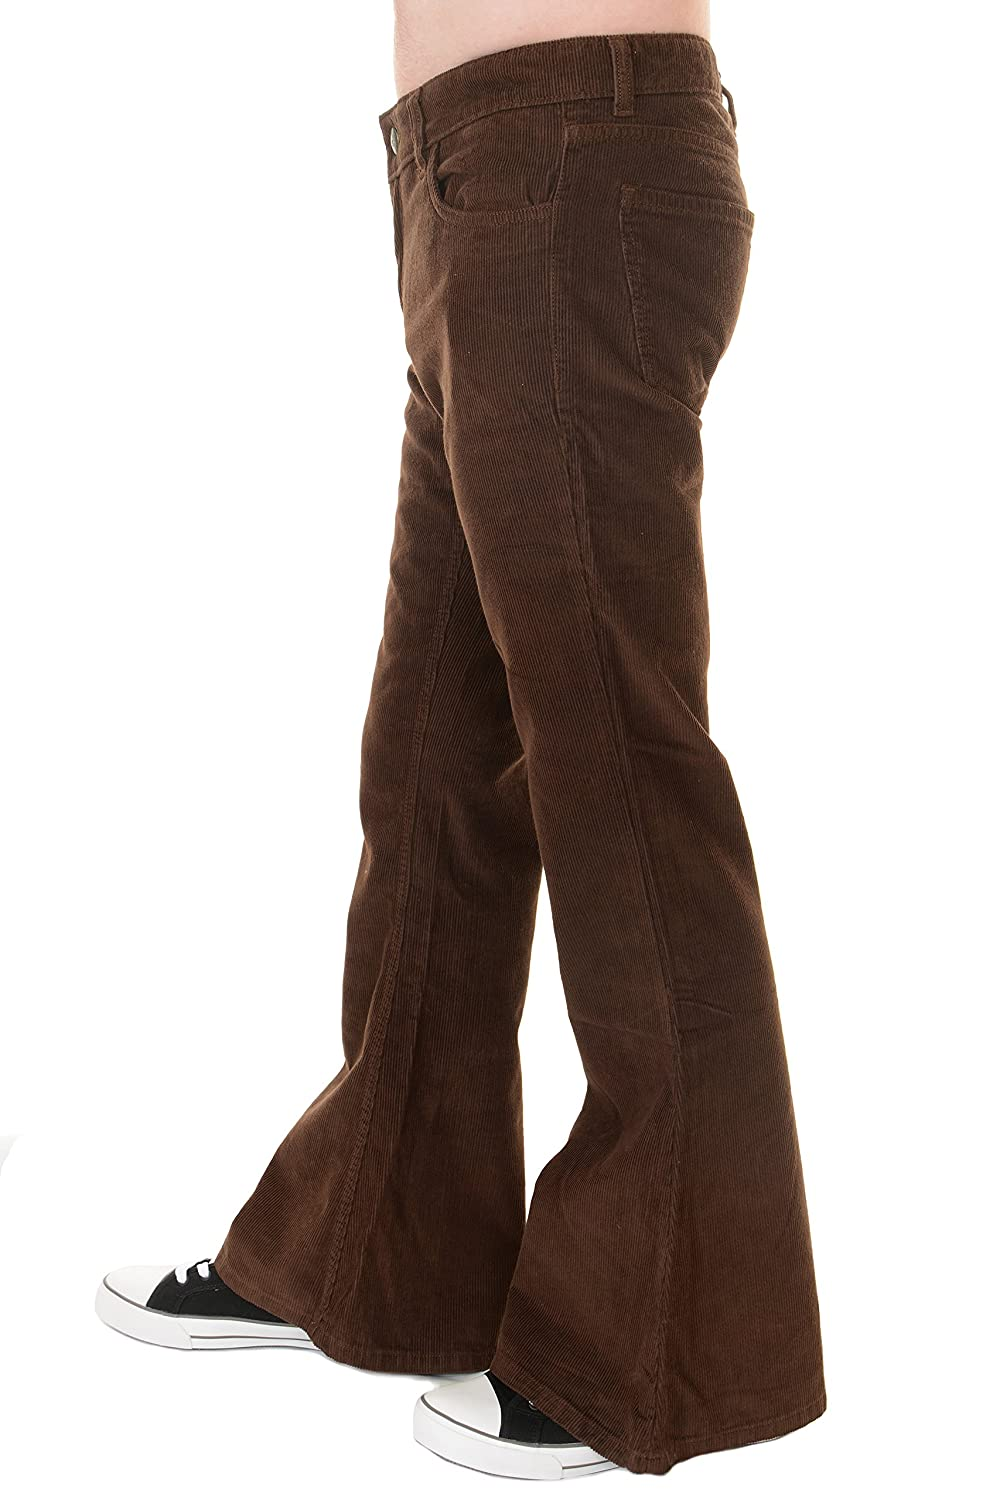 Men's Vintage Pants, Trousers, Jeans, Overalls Run & Fly Mens 70s Vintage Retro Brown Corduroy Bell Bottom Flares �29.99 AT vintagedancer.com